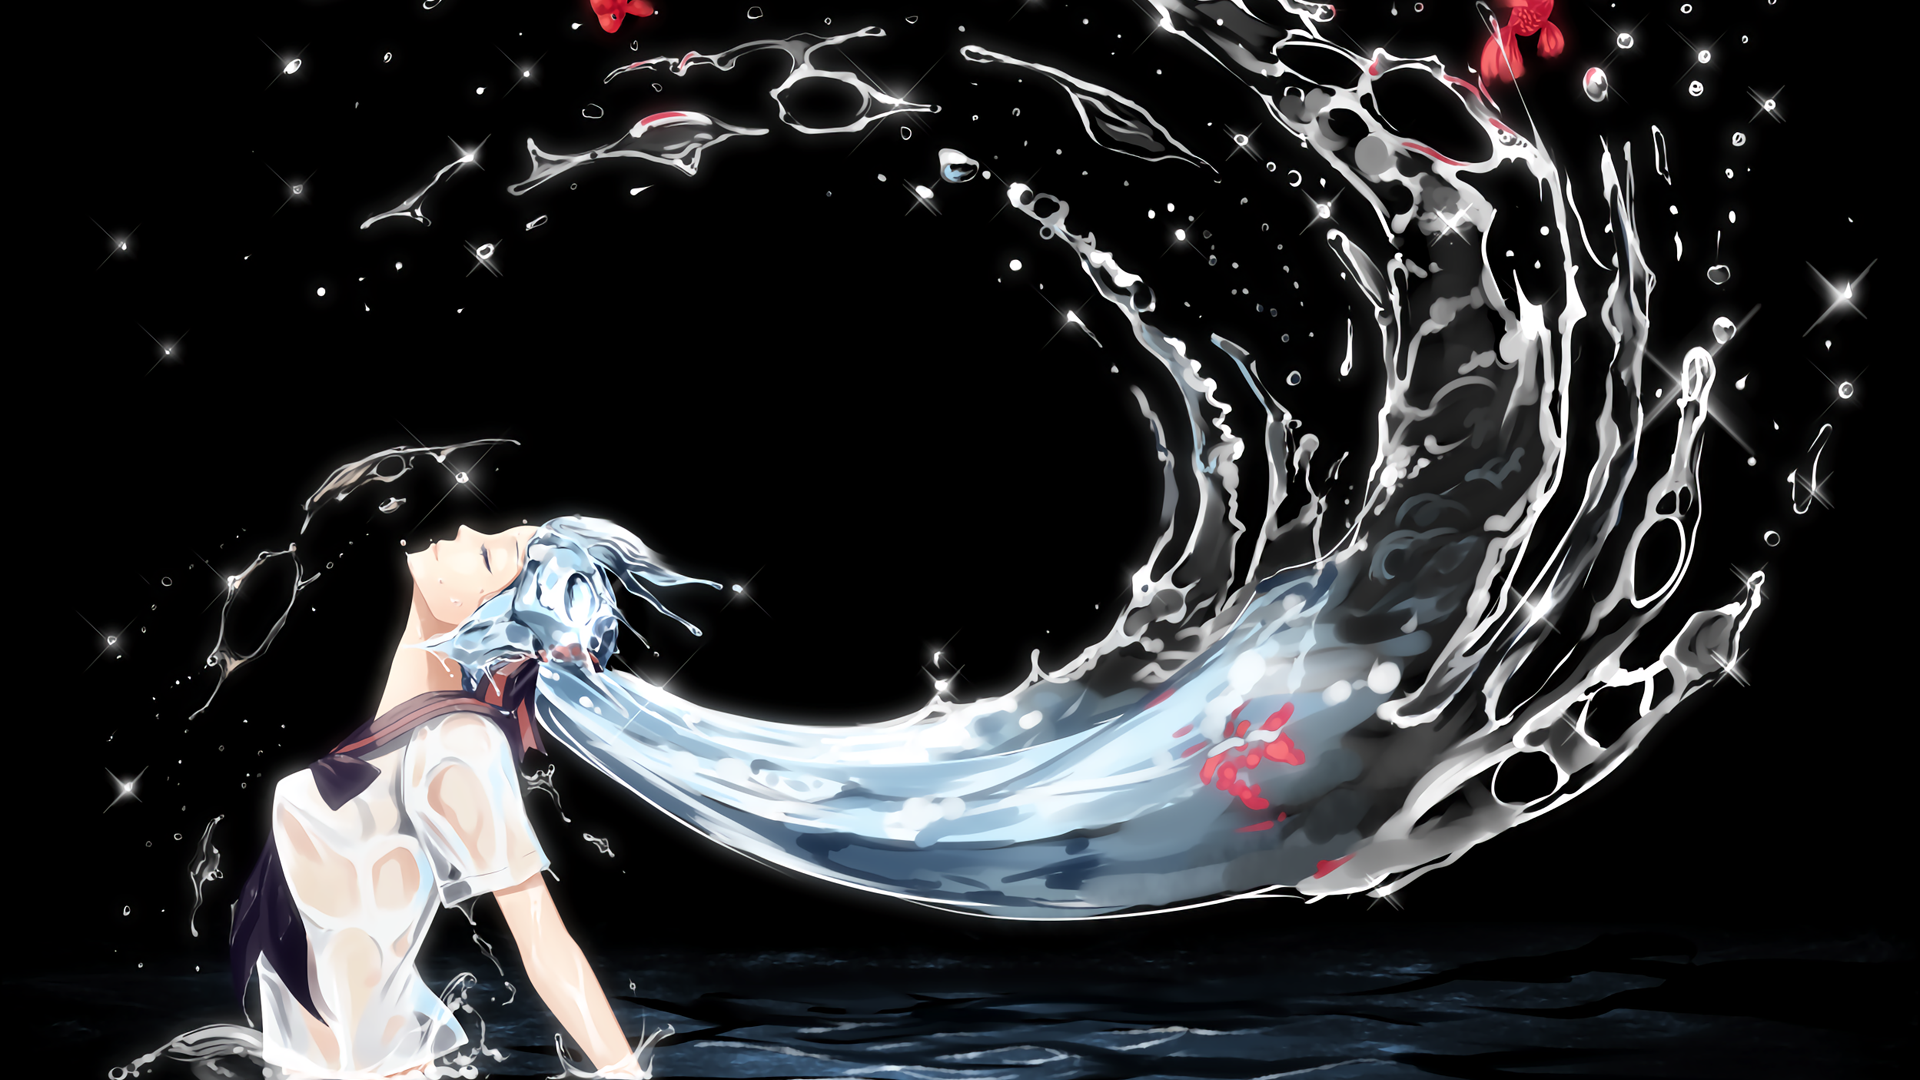 Fish in Her Hair [Vocaloid][1920x1080] Need #iPhone #6S #Plus #Wallpaper/ #Background for #IPhone6SPlus? Follow iPhone 6S Plus 3Wallpapers/ #Backgrounds Must to Have http://ift.tt/1SfrOMr